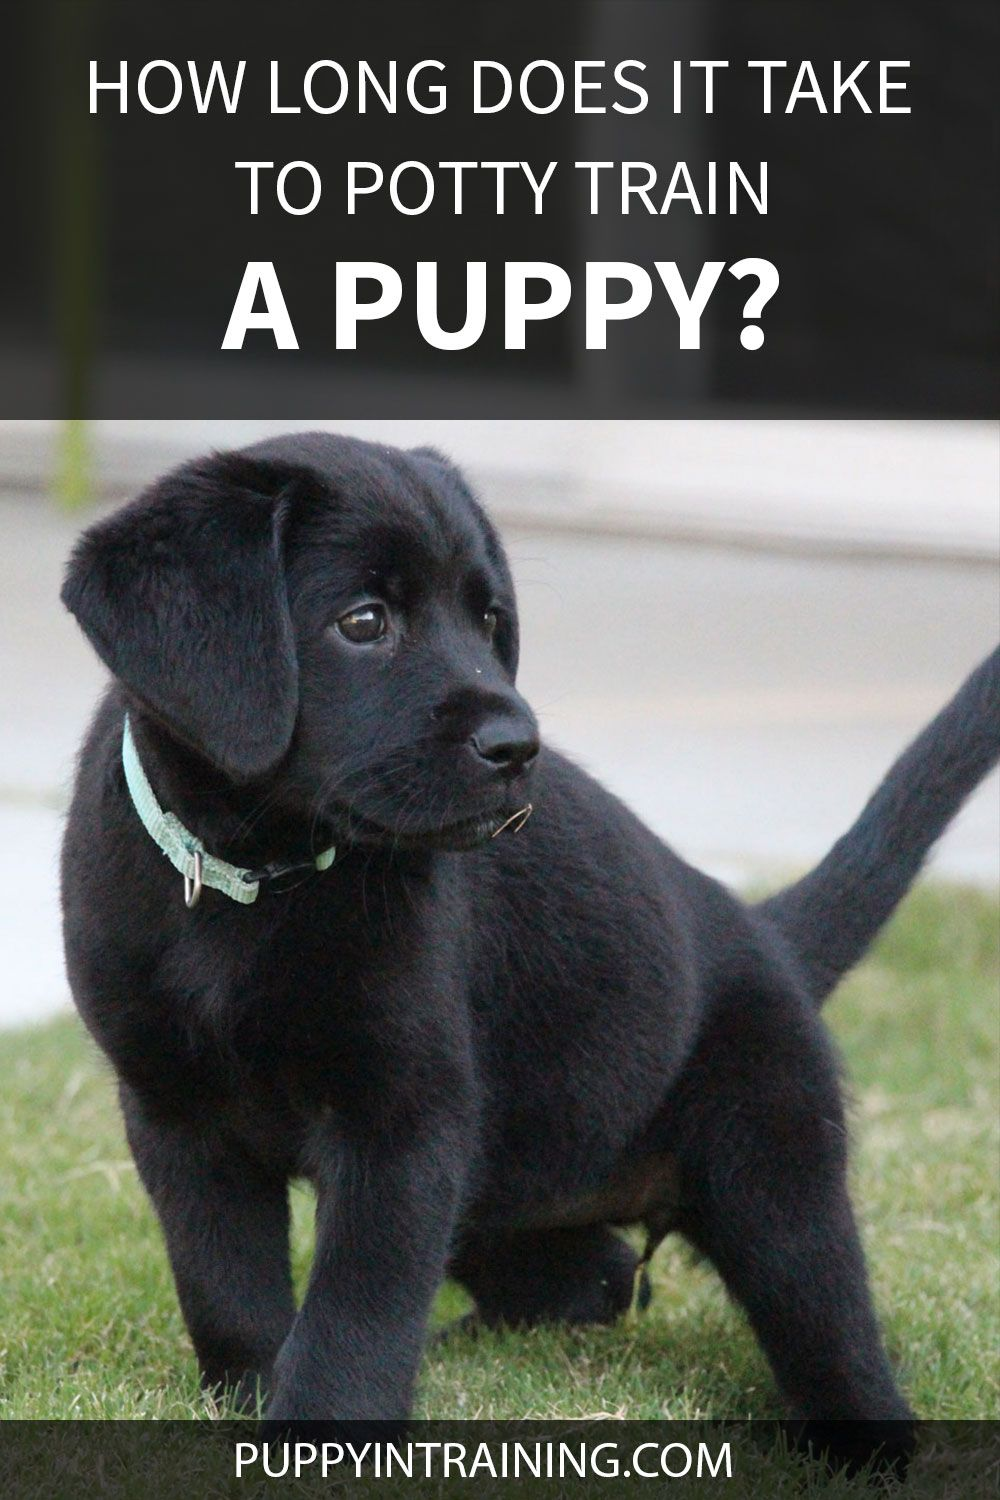 How Long Does It Take To Potty Train A Puppy In 2021 Potty Training Puppy Puppy Training Puppy Potty Training Tips